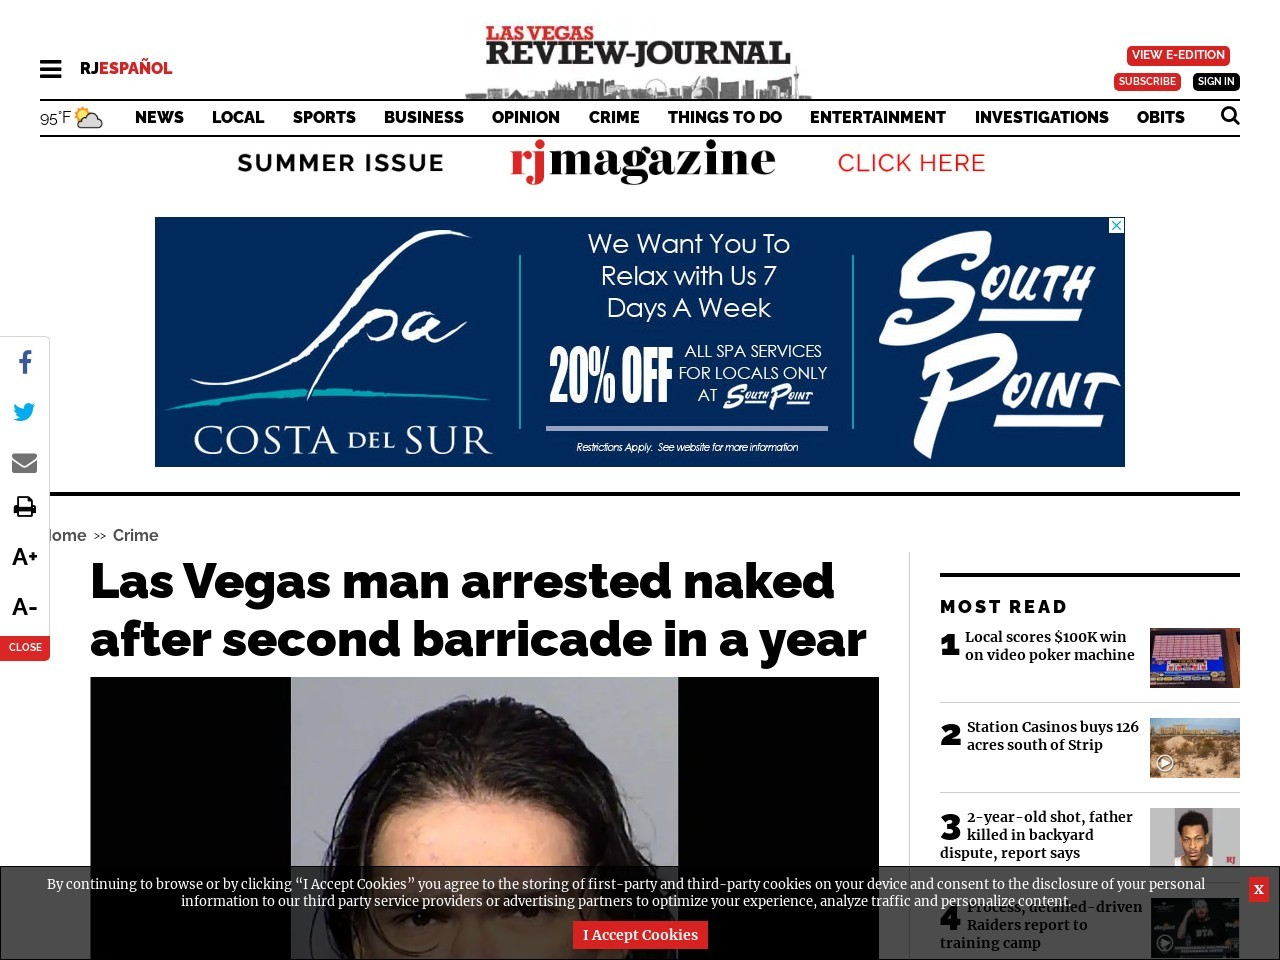 Las Vegas man arrested naked after second barricade in a year